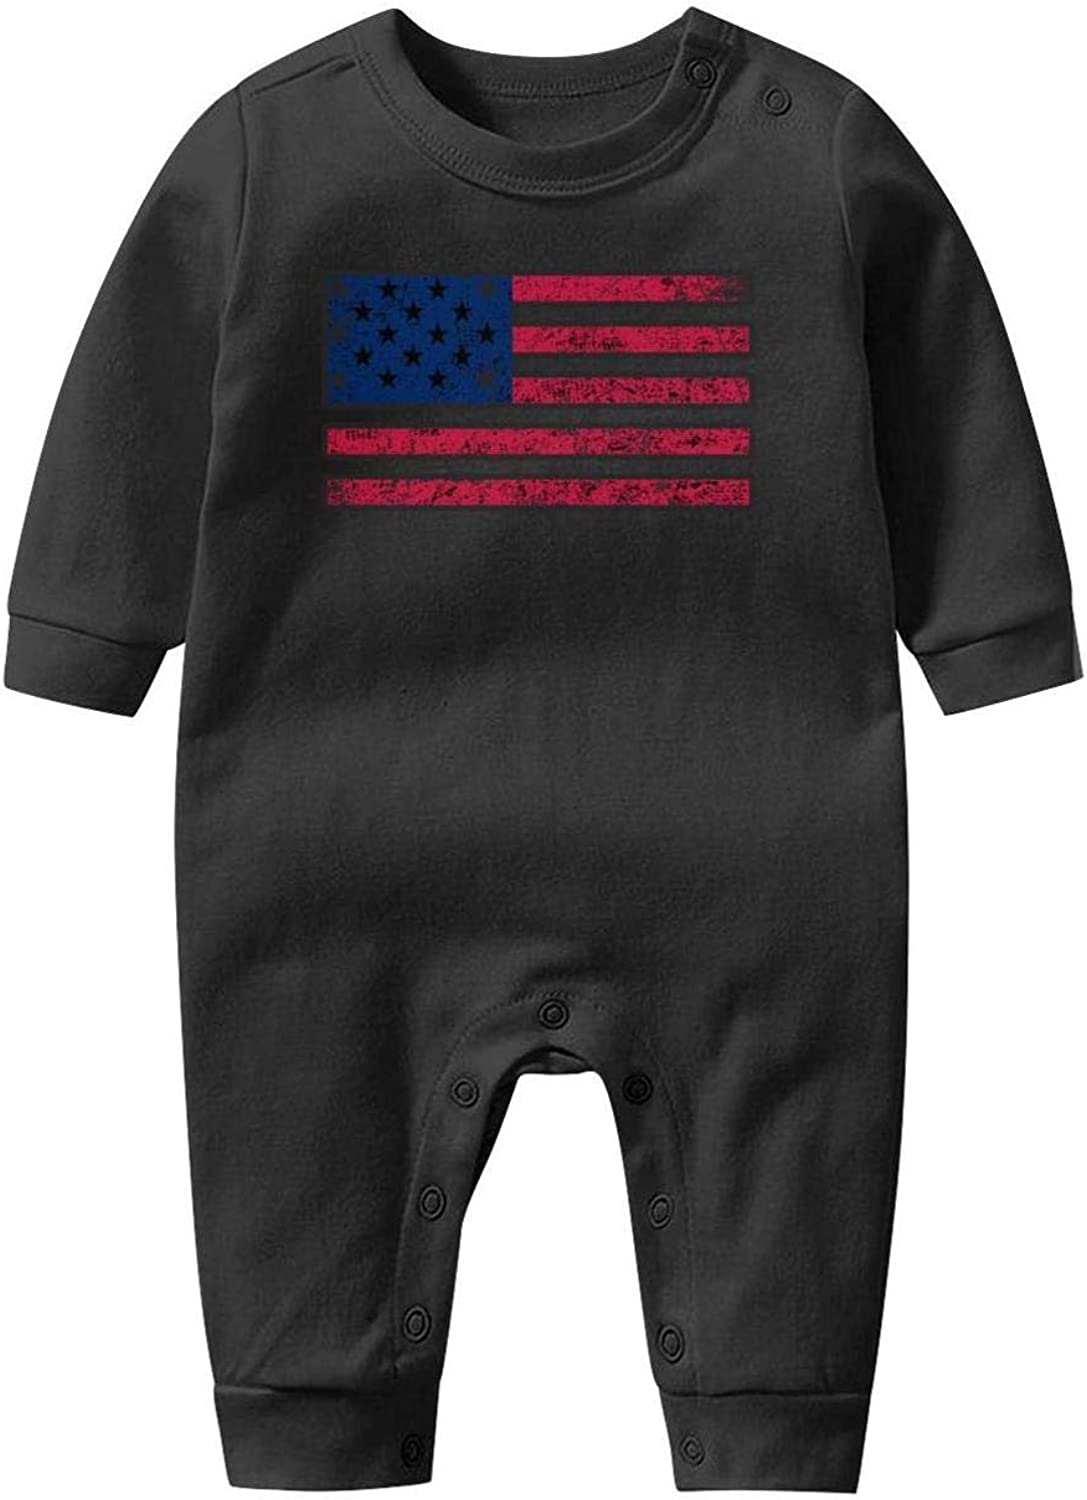 Home Roots State North Carolina NC Baby Boys Girls Long Sleeve Baby Onesie Organic Cute Baby Clothes